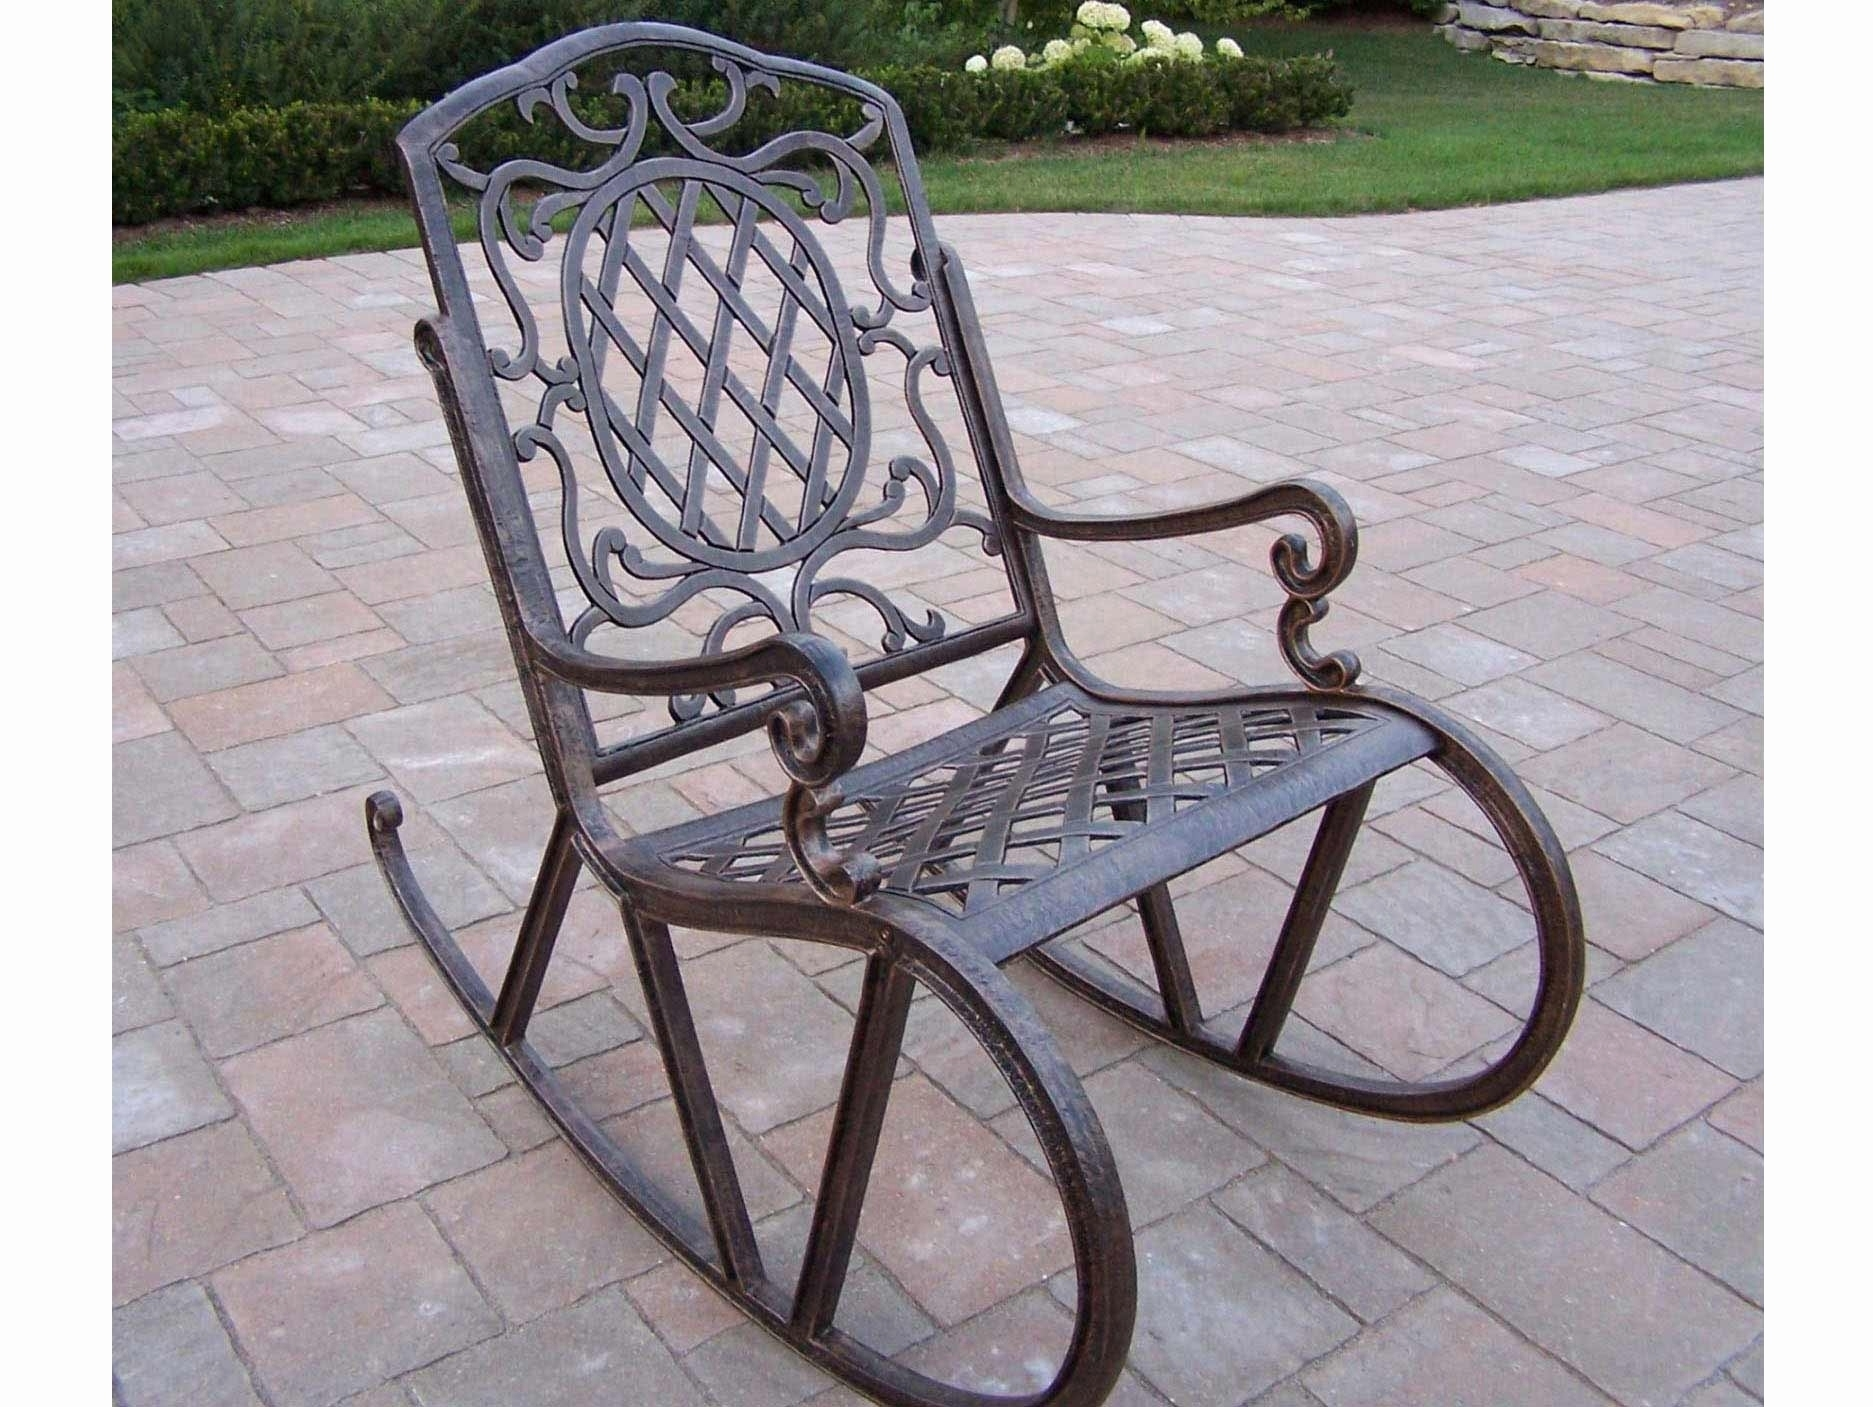 Wrought Iron Patio Furniture Rocking Chairs Ideas Antique Vintage Throughout Iron Rocking Patio Chairs (View 7 of 15)